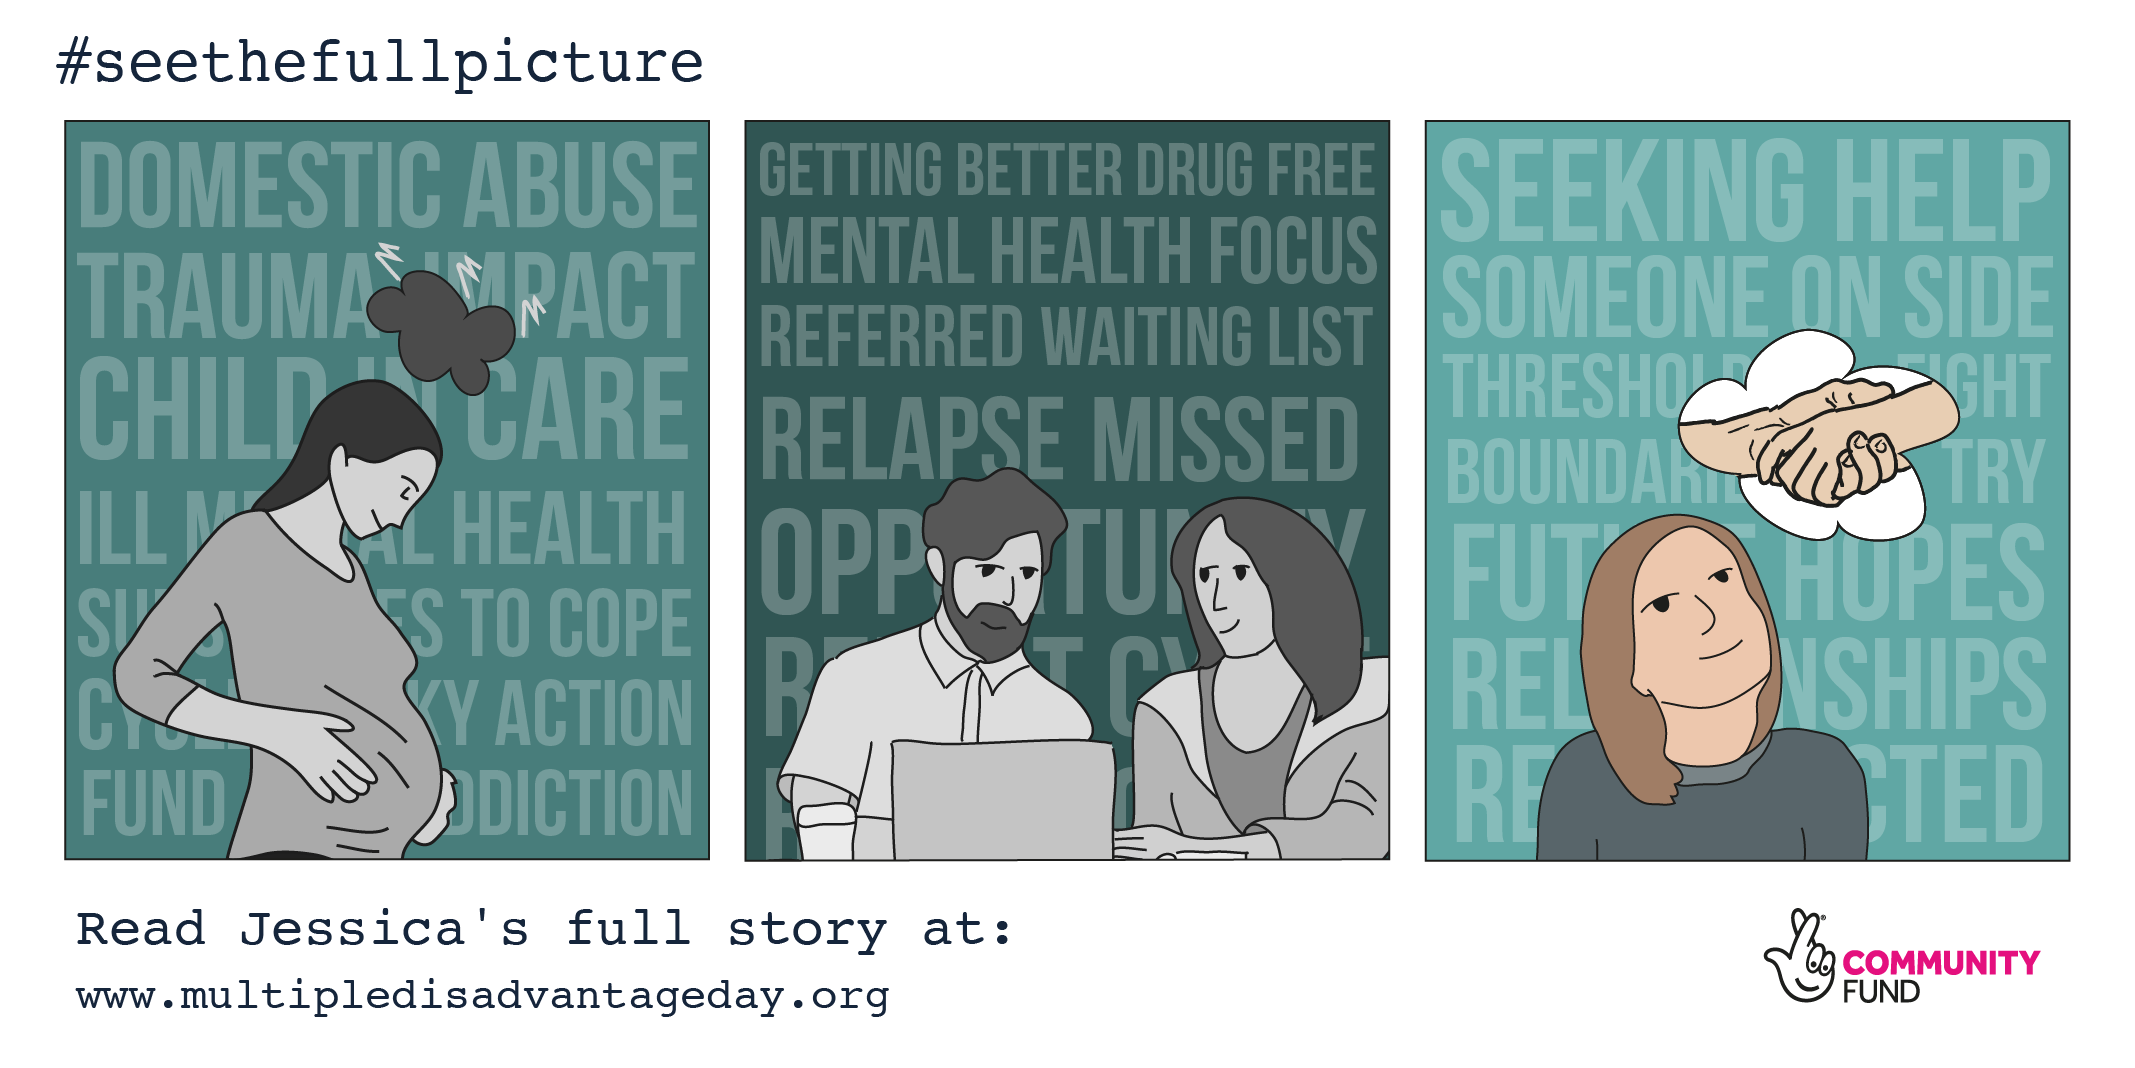 Multiple Disadvantage Day - #seethefullpicture - Campaign Graphics - True Stories - Jessica's Story